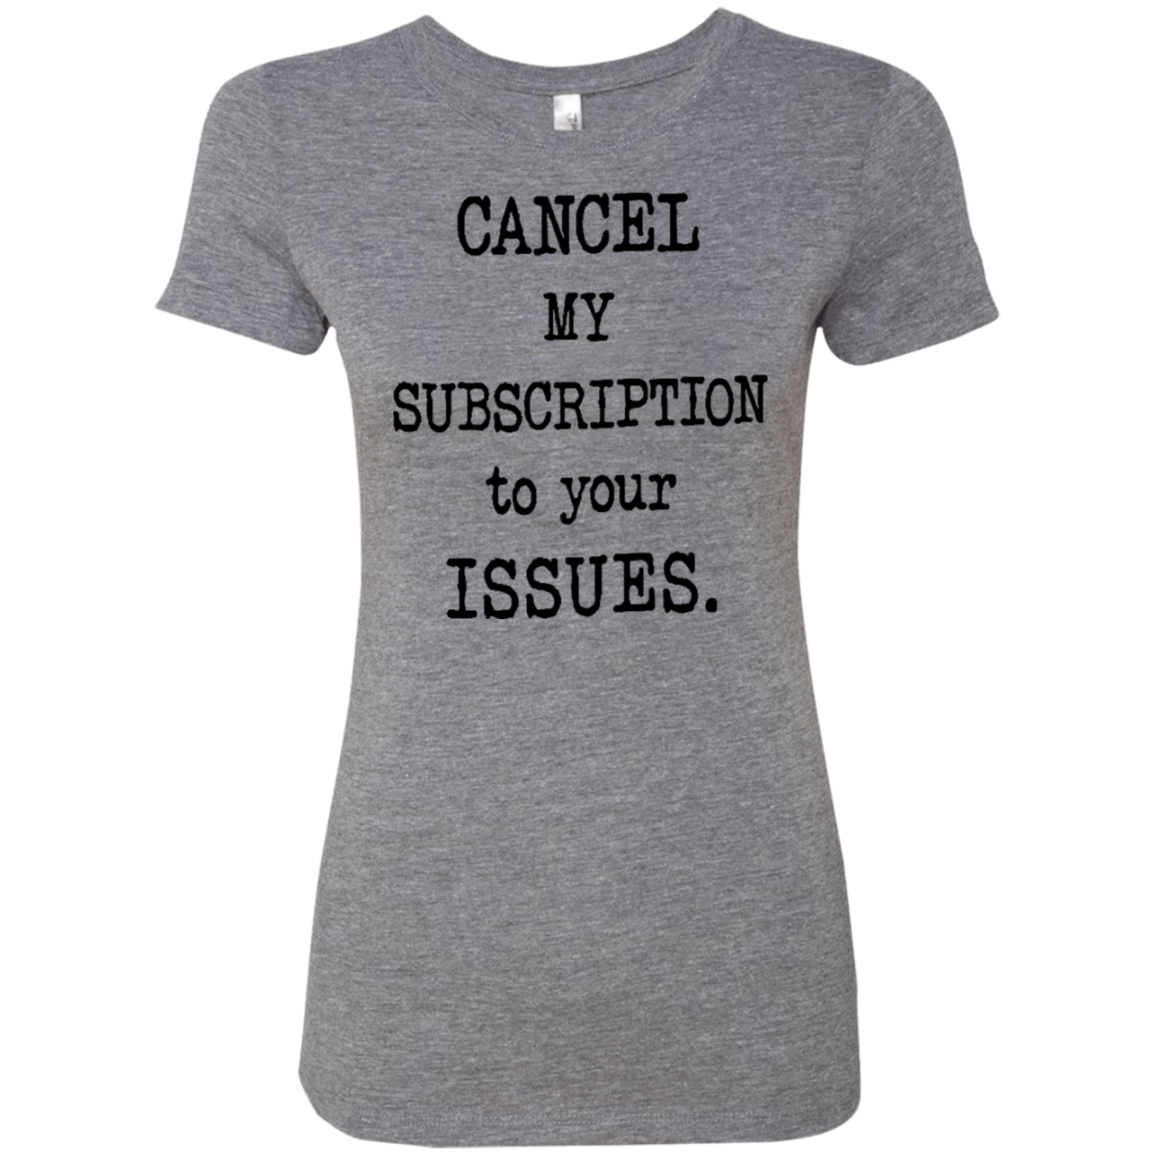 Cancel My Subscription to Your Issues Women's Classic Tee - Trendy Tees